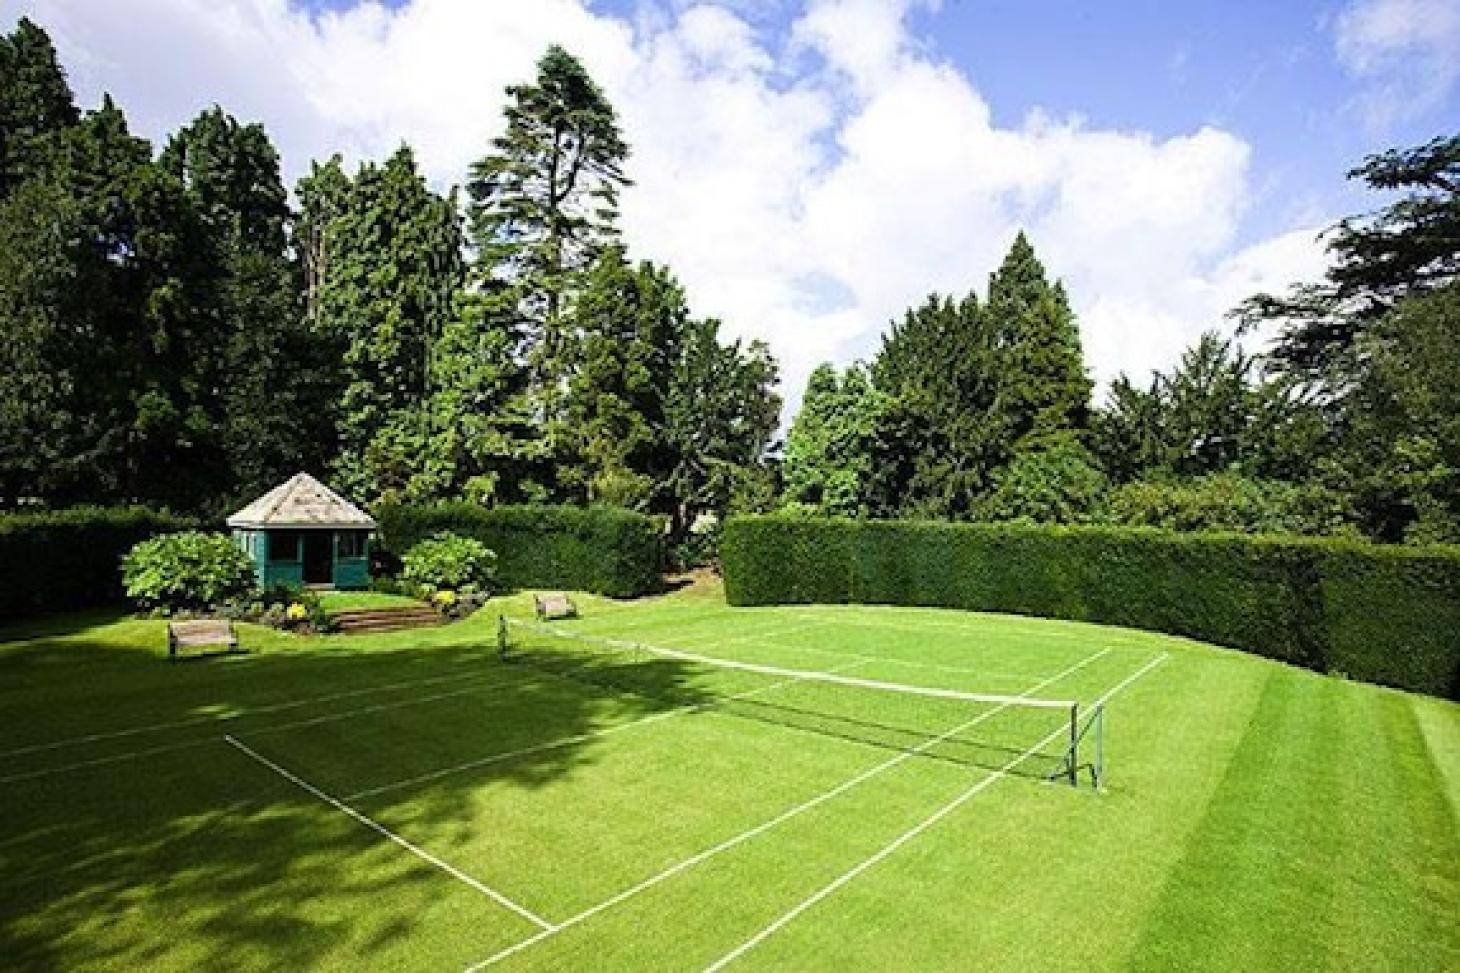 Luton Hoo Hotel Golf and Spa Outdoor | Grass tennis court